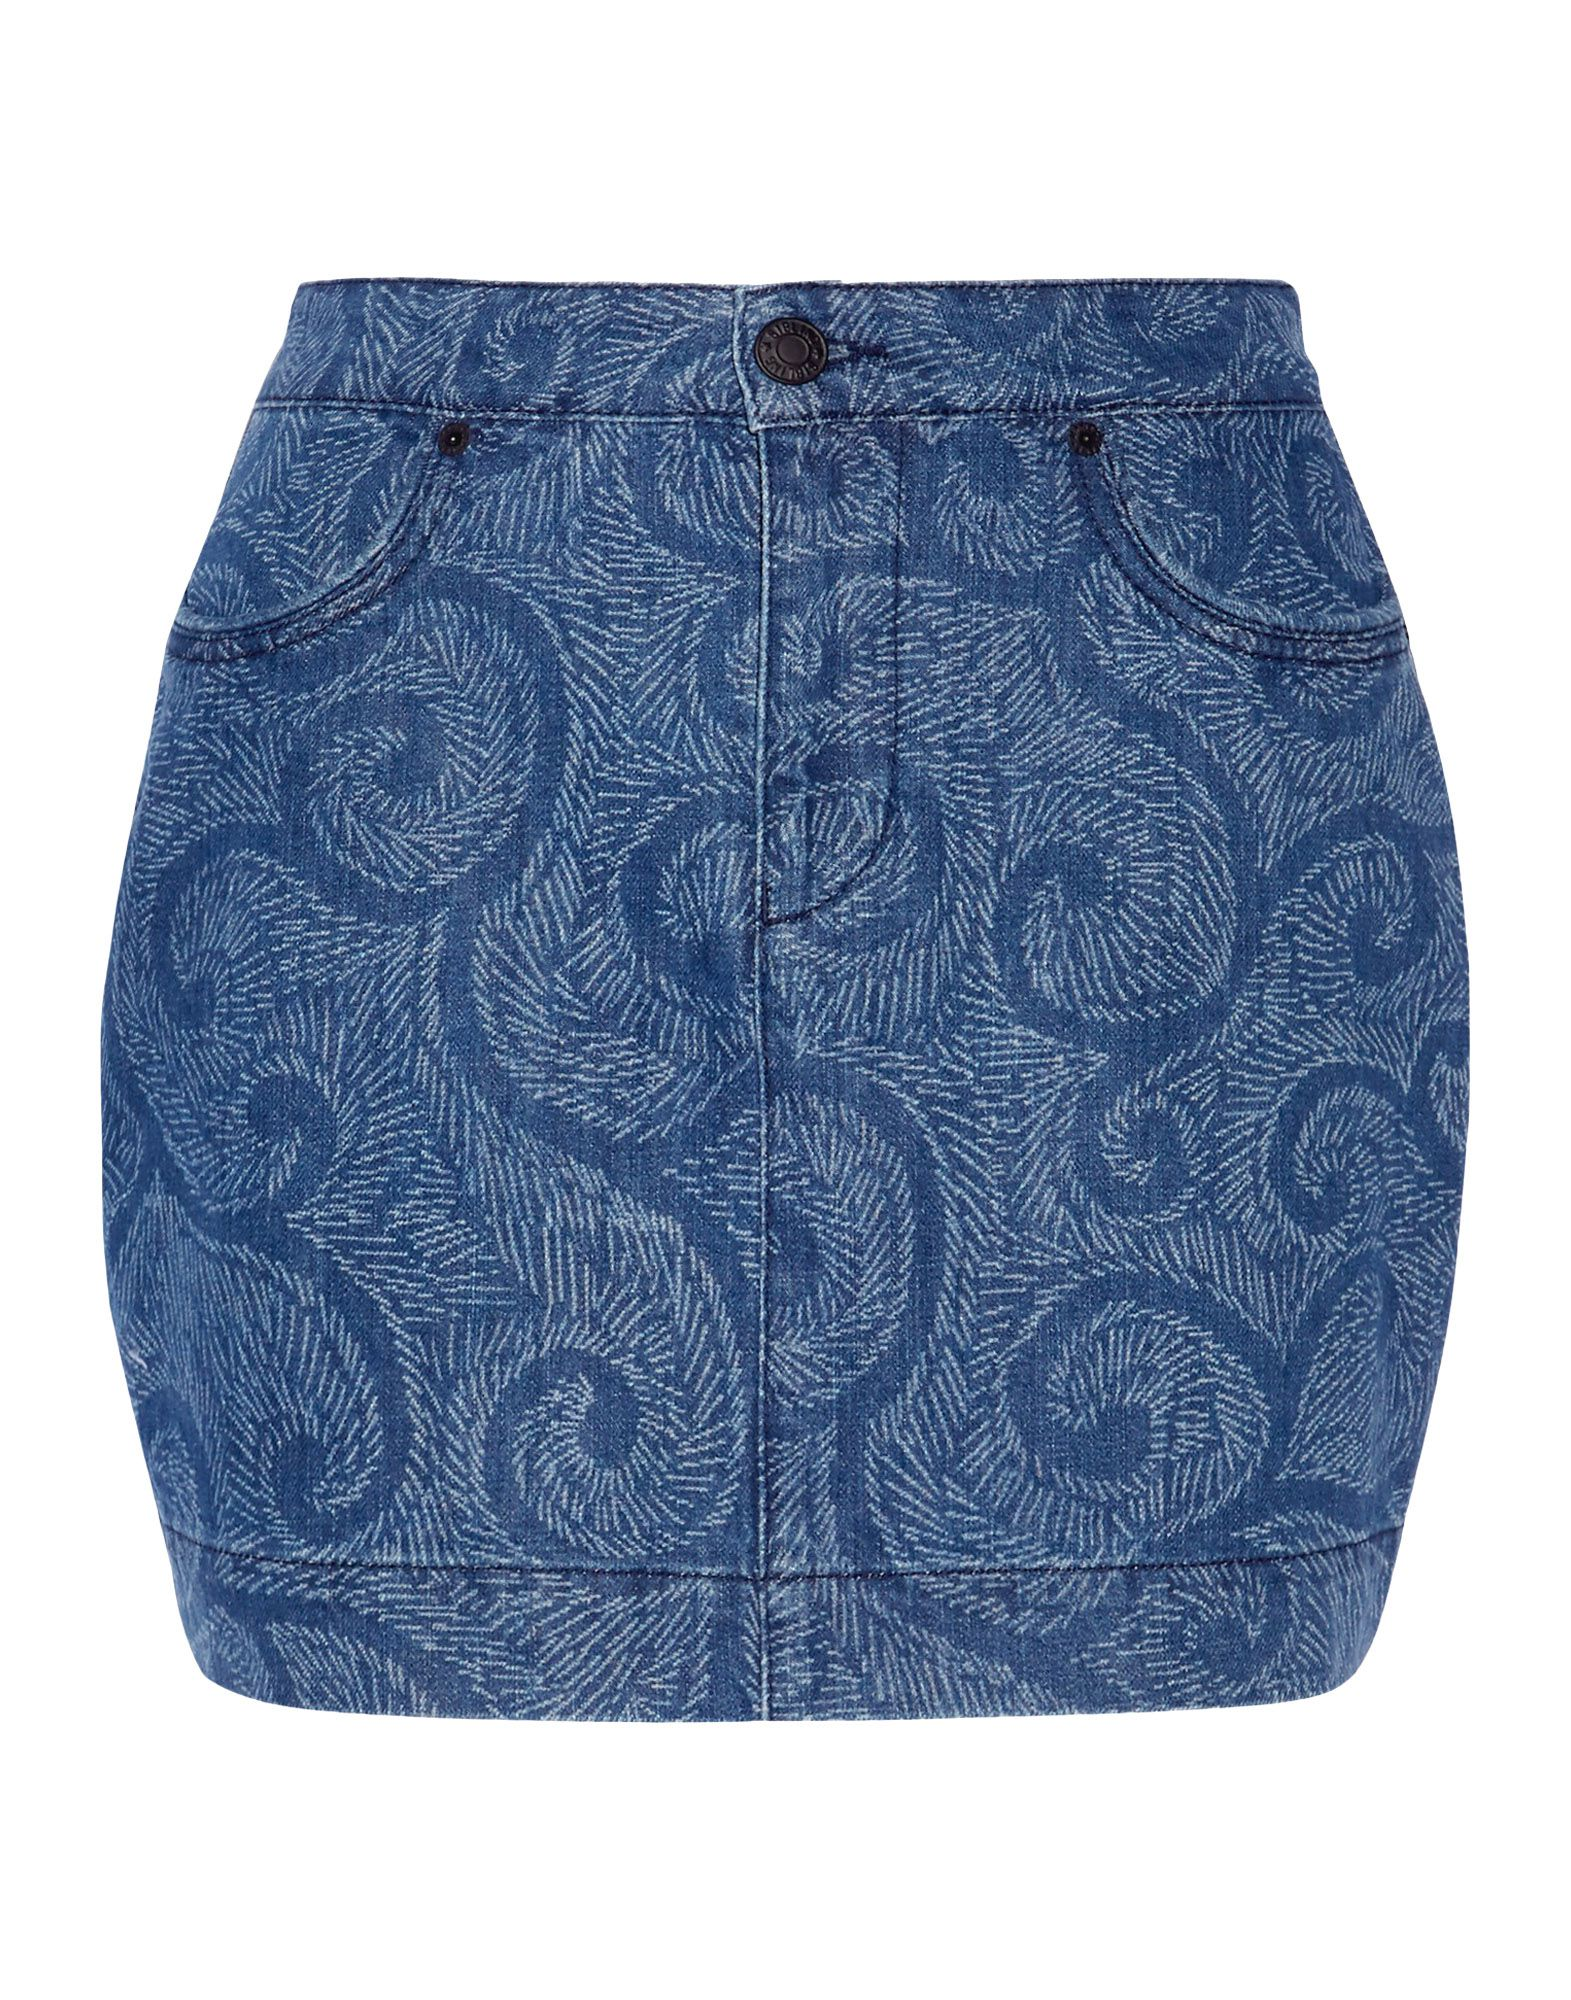 SIBLING Denim Skirt in Blue